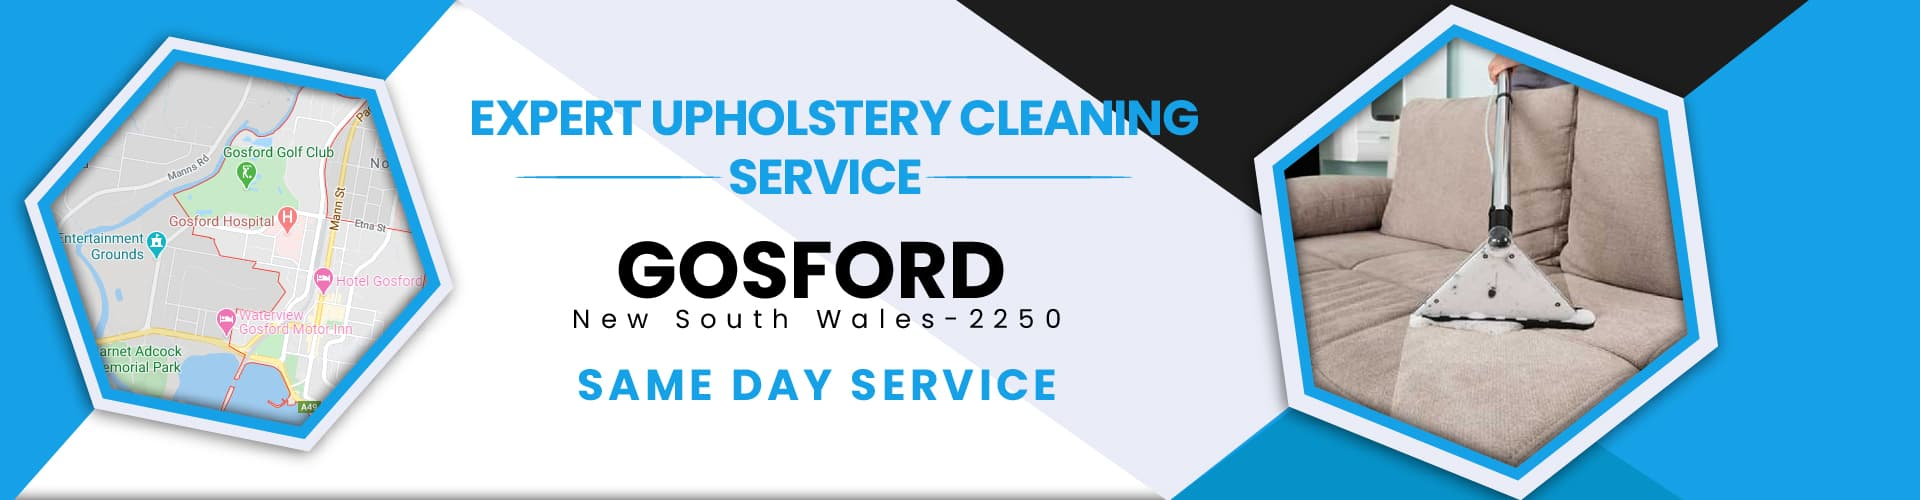 Upholstery Cleaning Gosford